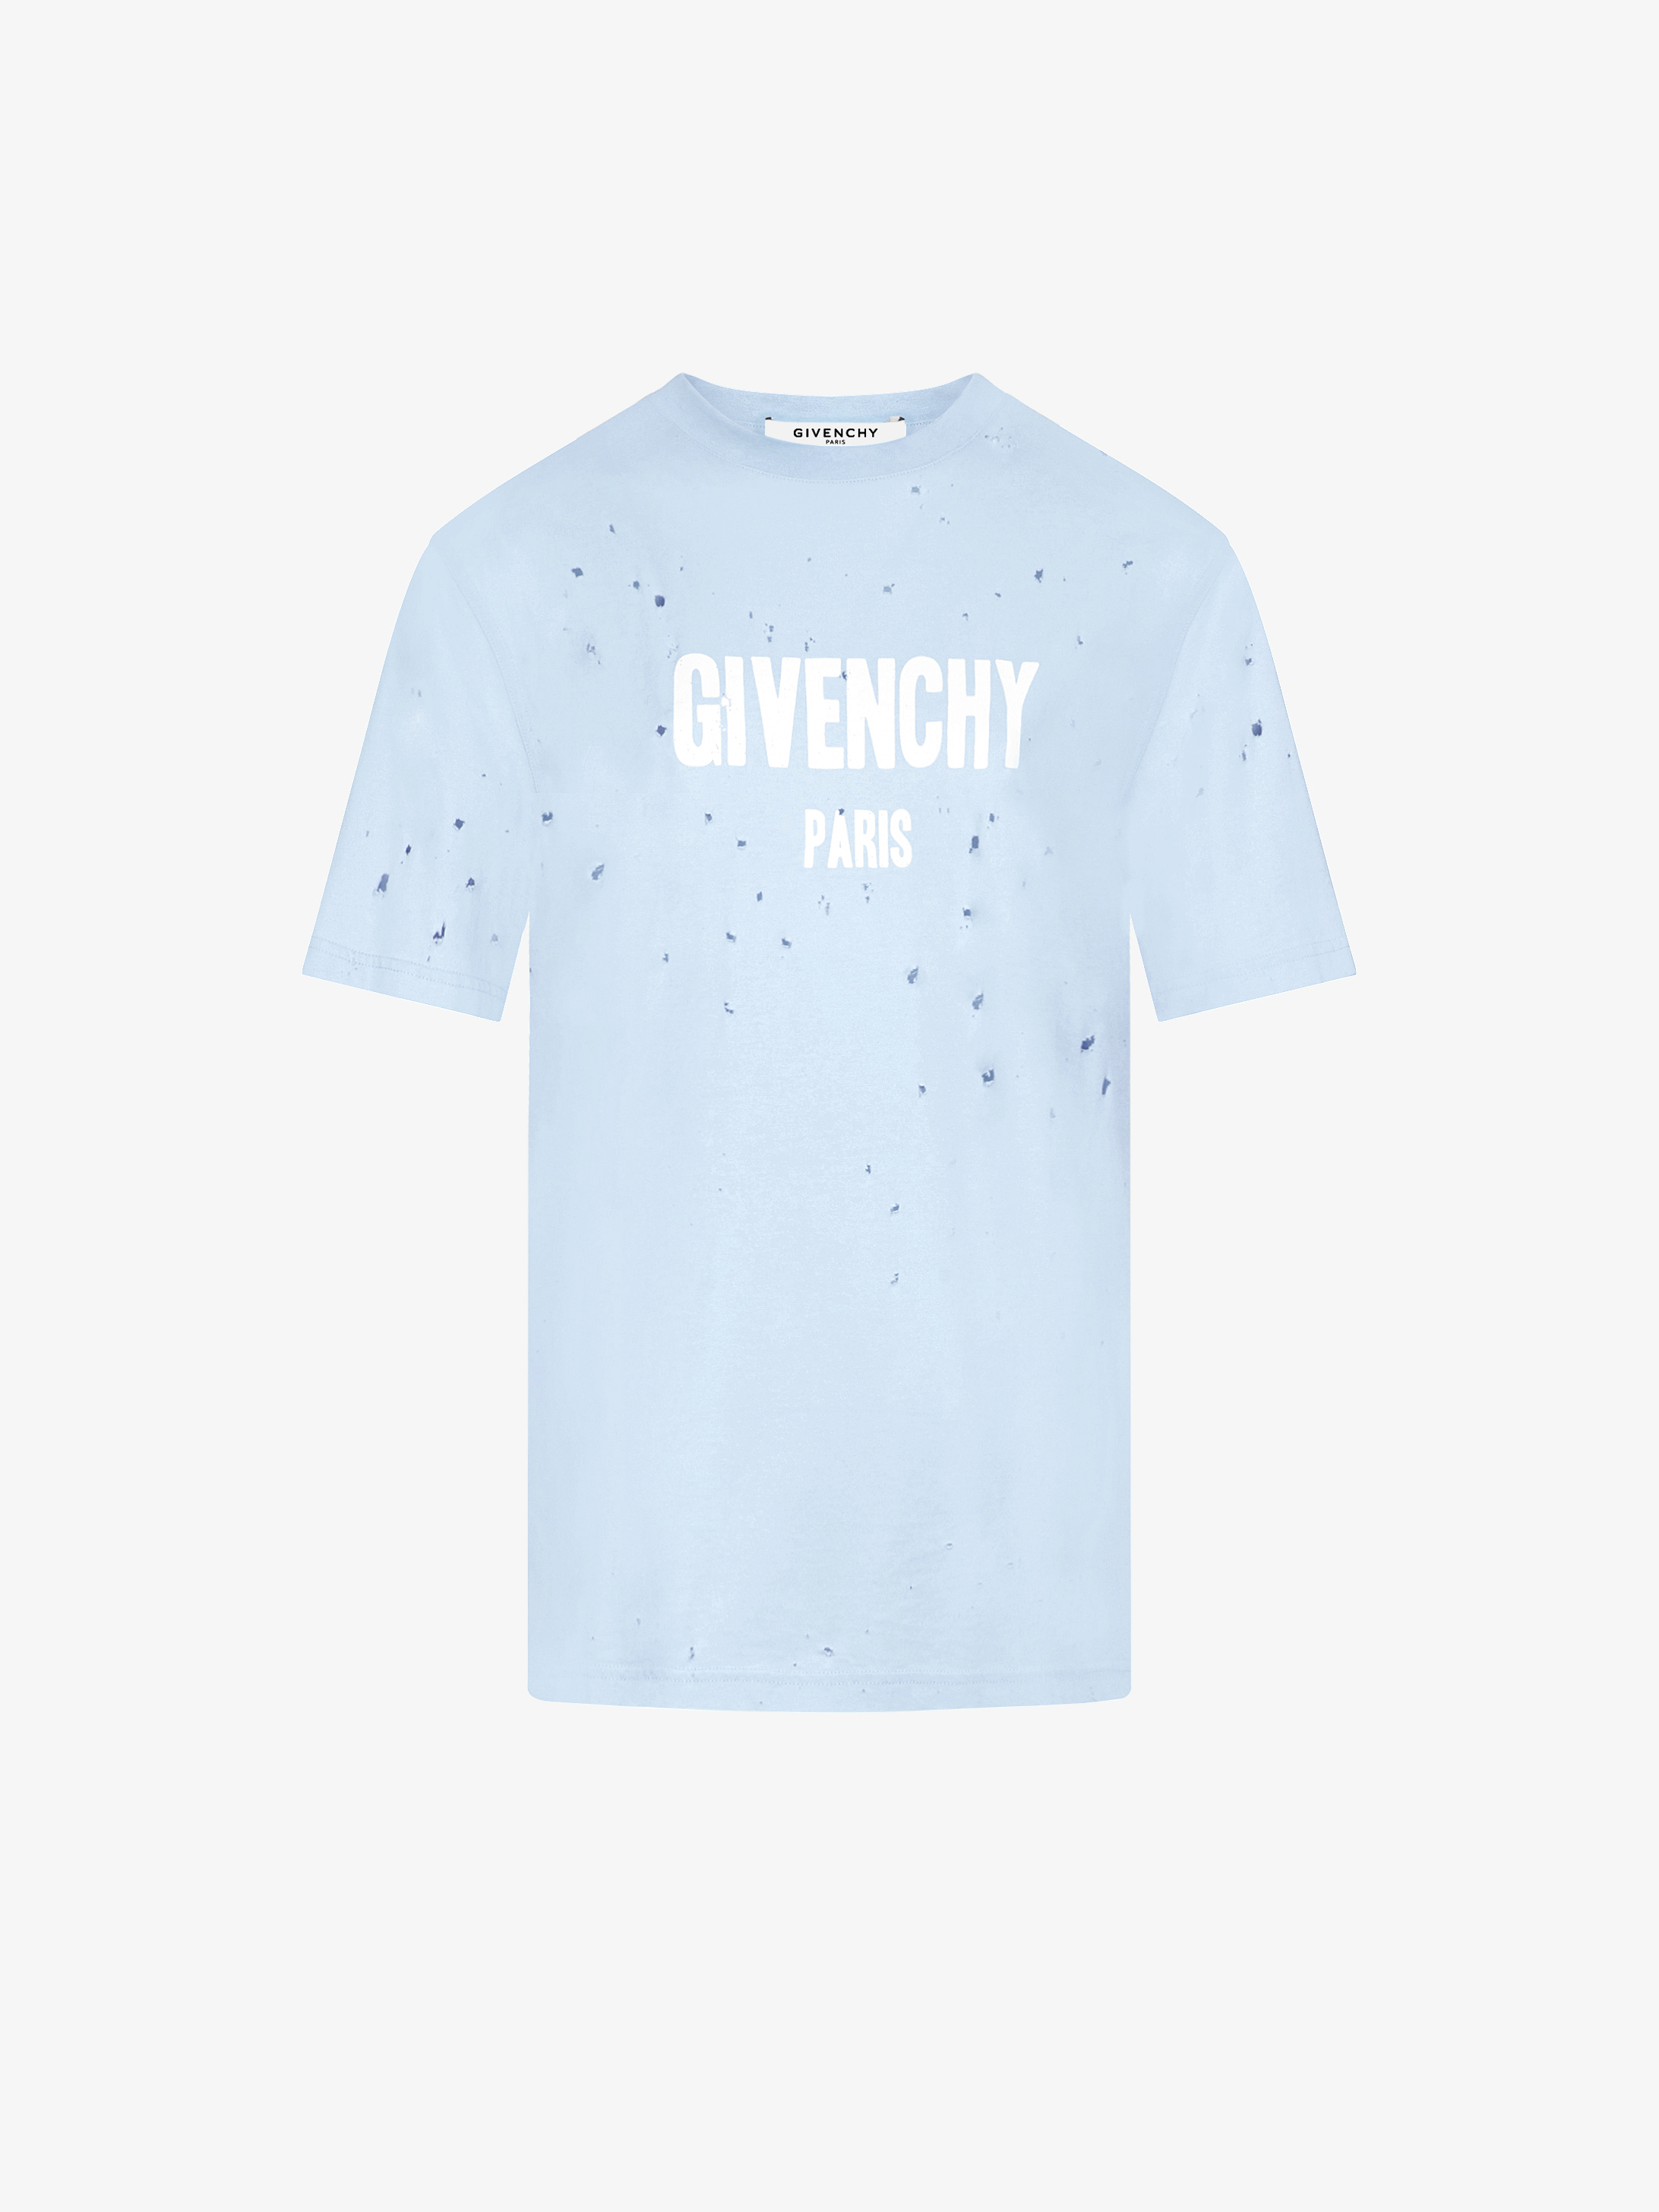 GIVENCHY PARIS oversized destroyed t-shirt